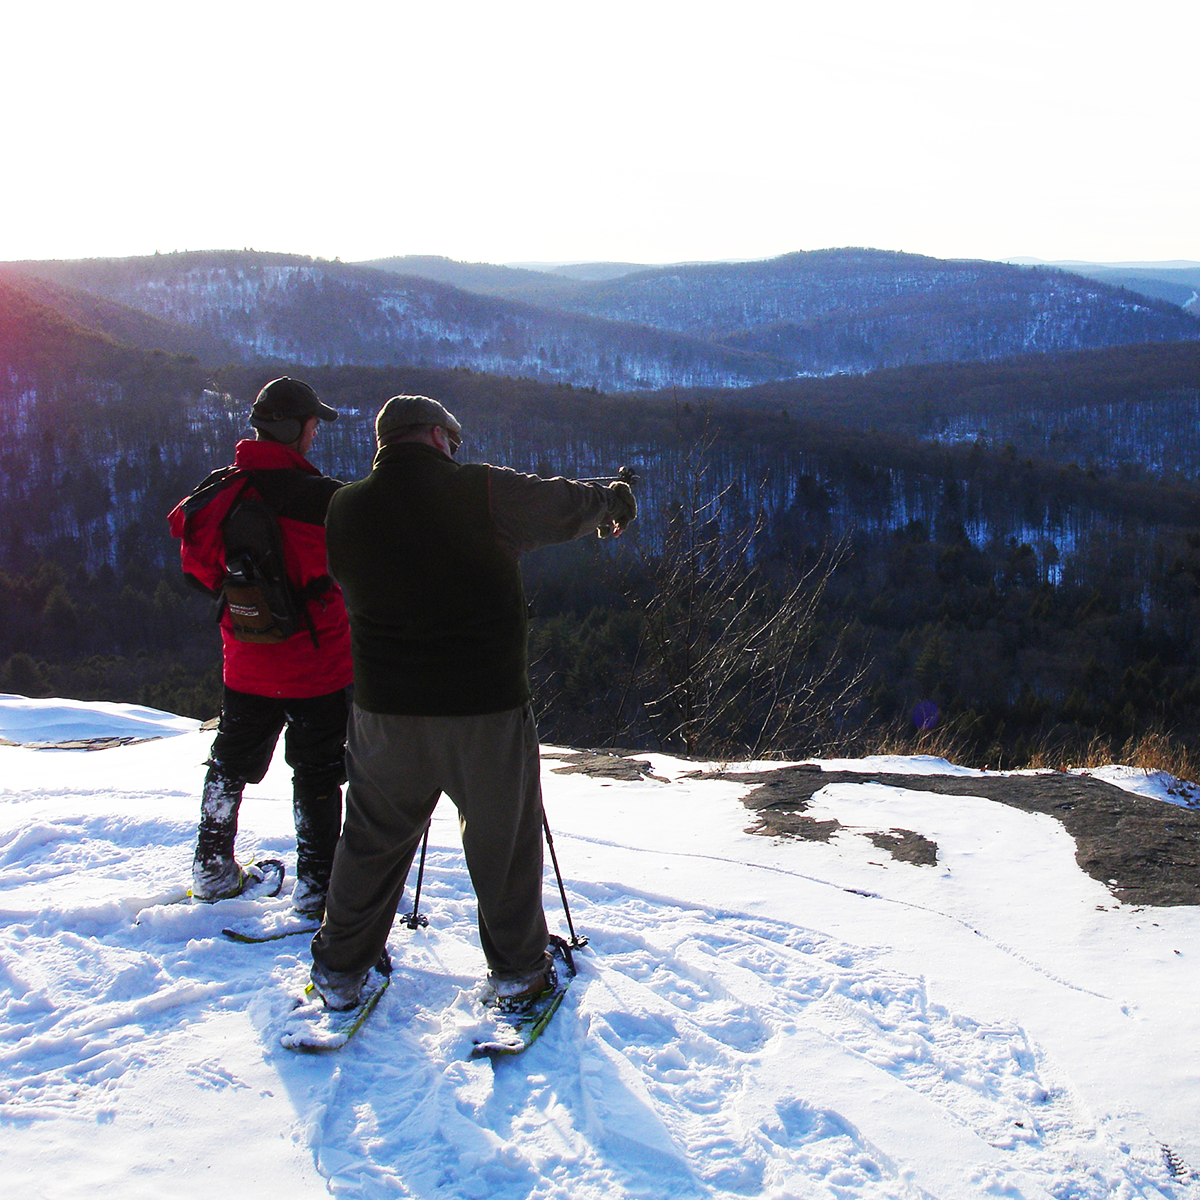 Enjoy A Snowshoeing Or Cross Country Skiing Adventure In The Pocono Mountains This Winter Poconomtns Pocono Mountains Poconos Skiing